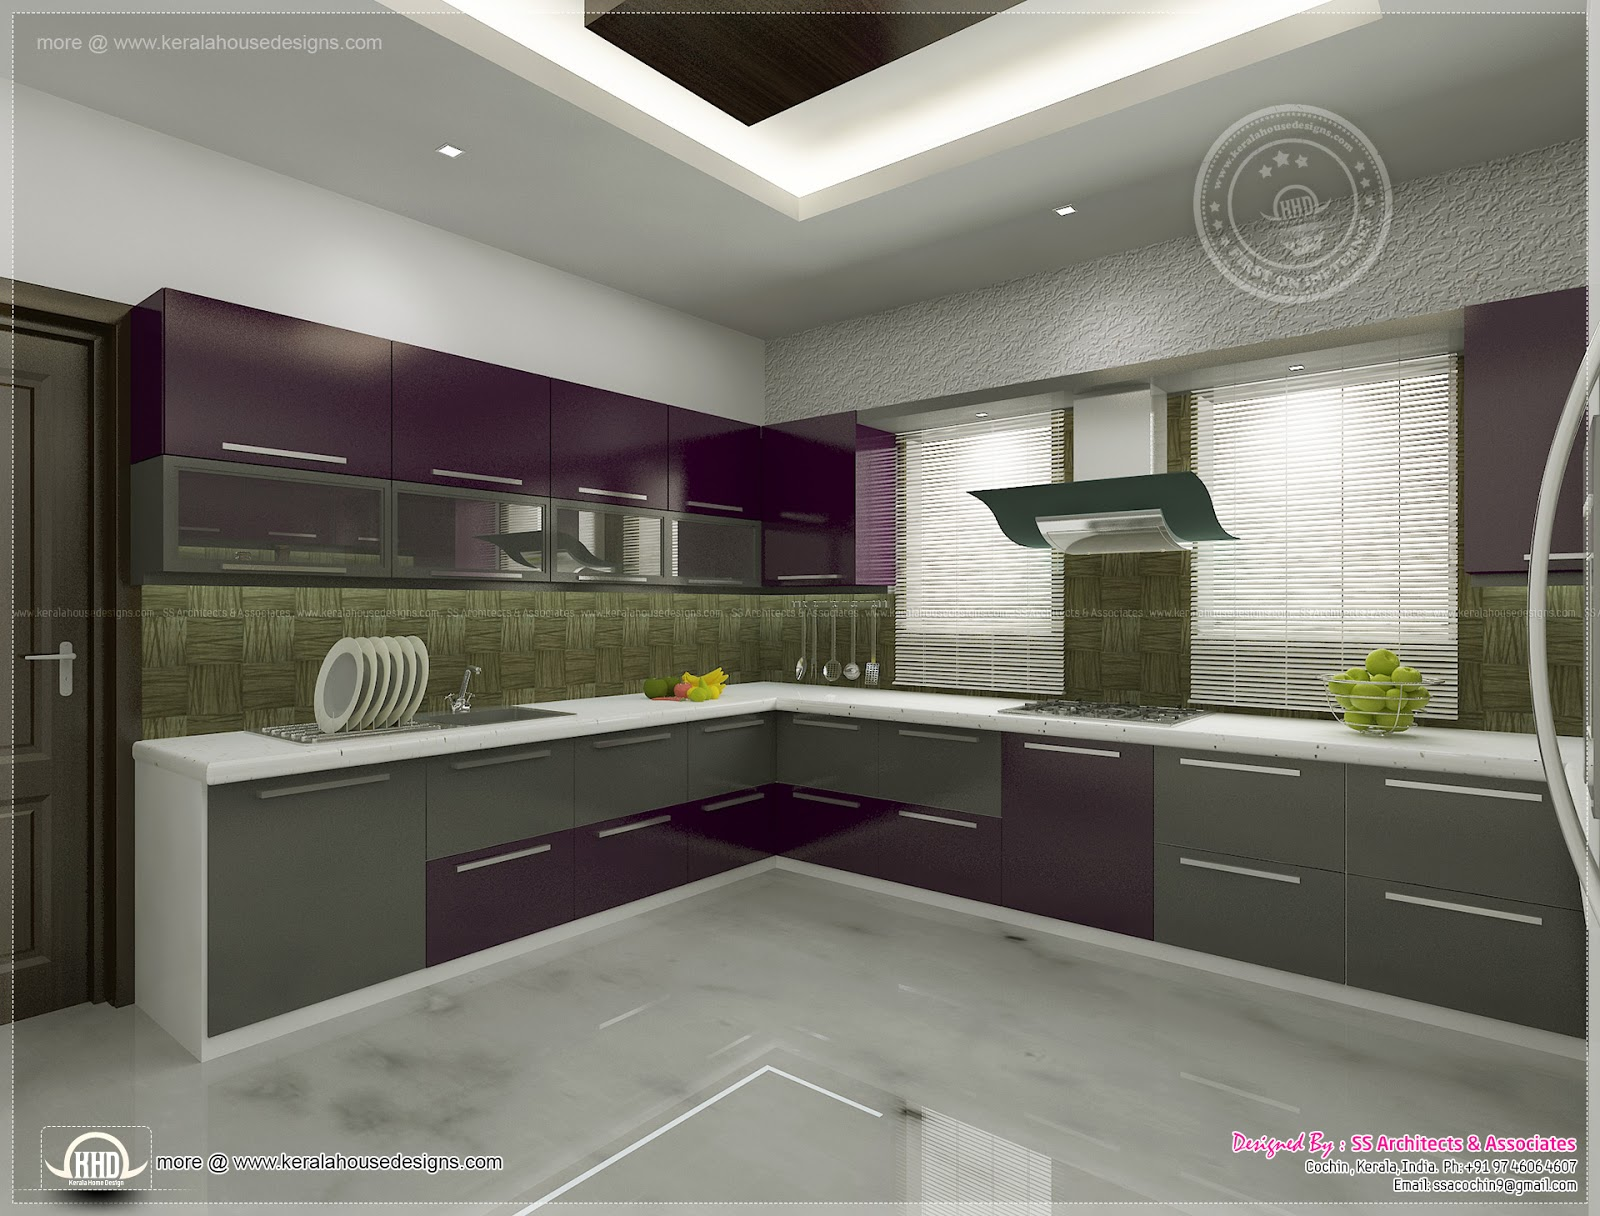 kitchen interior design photos kitchen interior views by ss architects cochin home 814